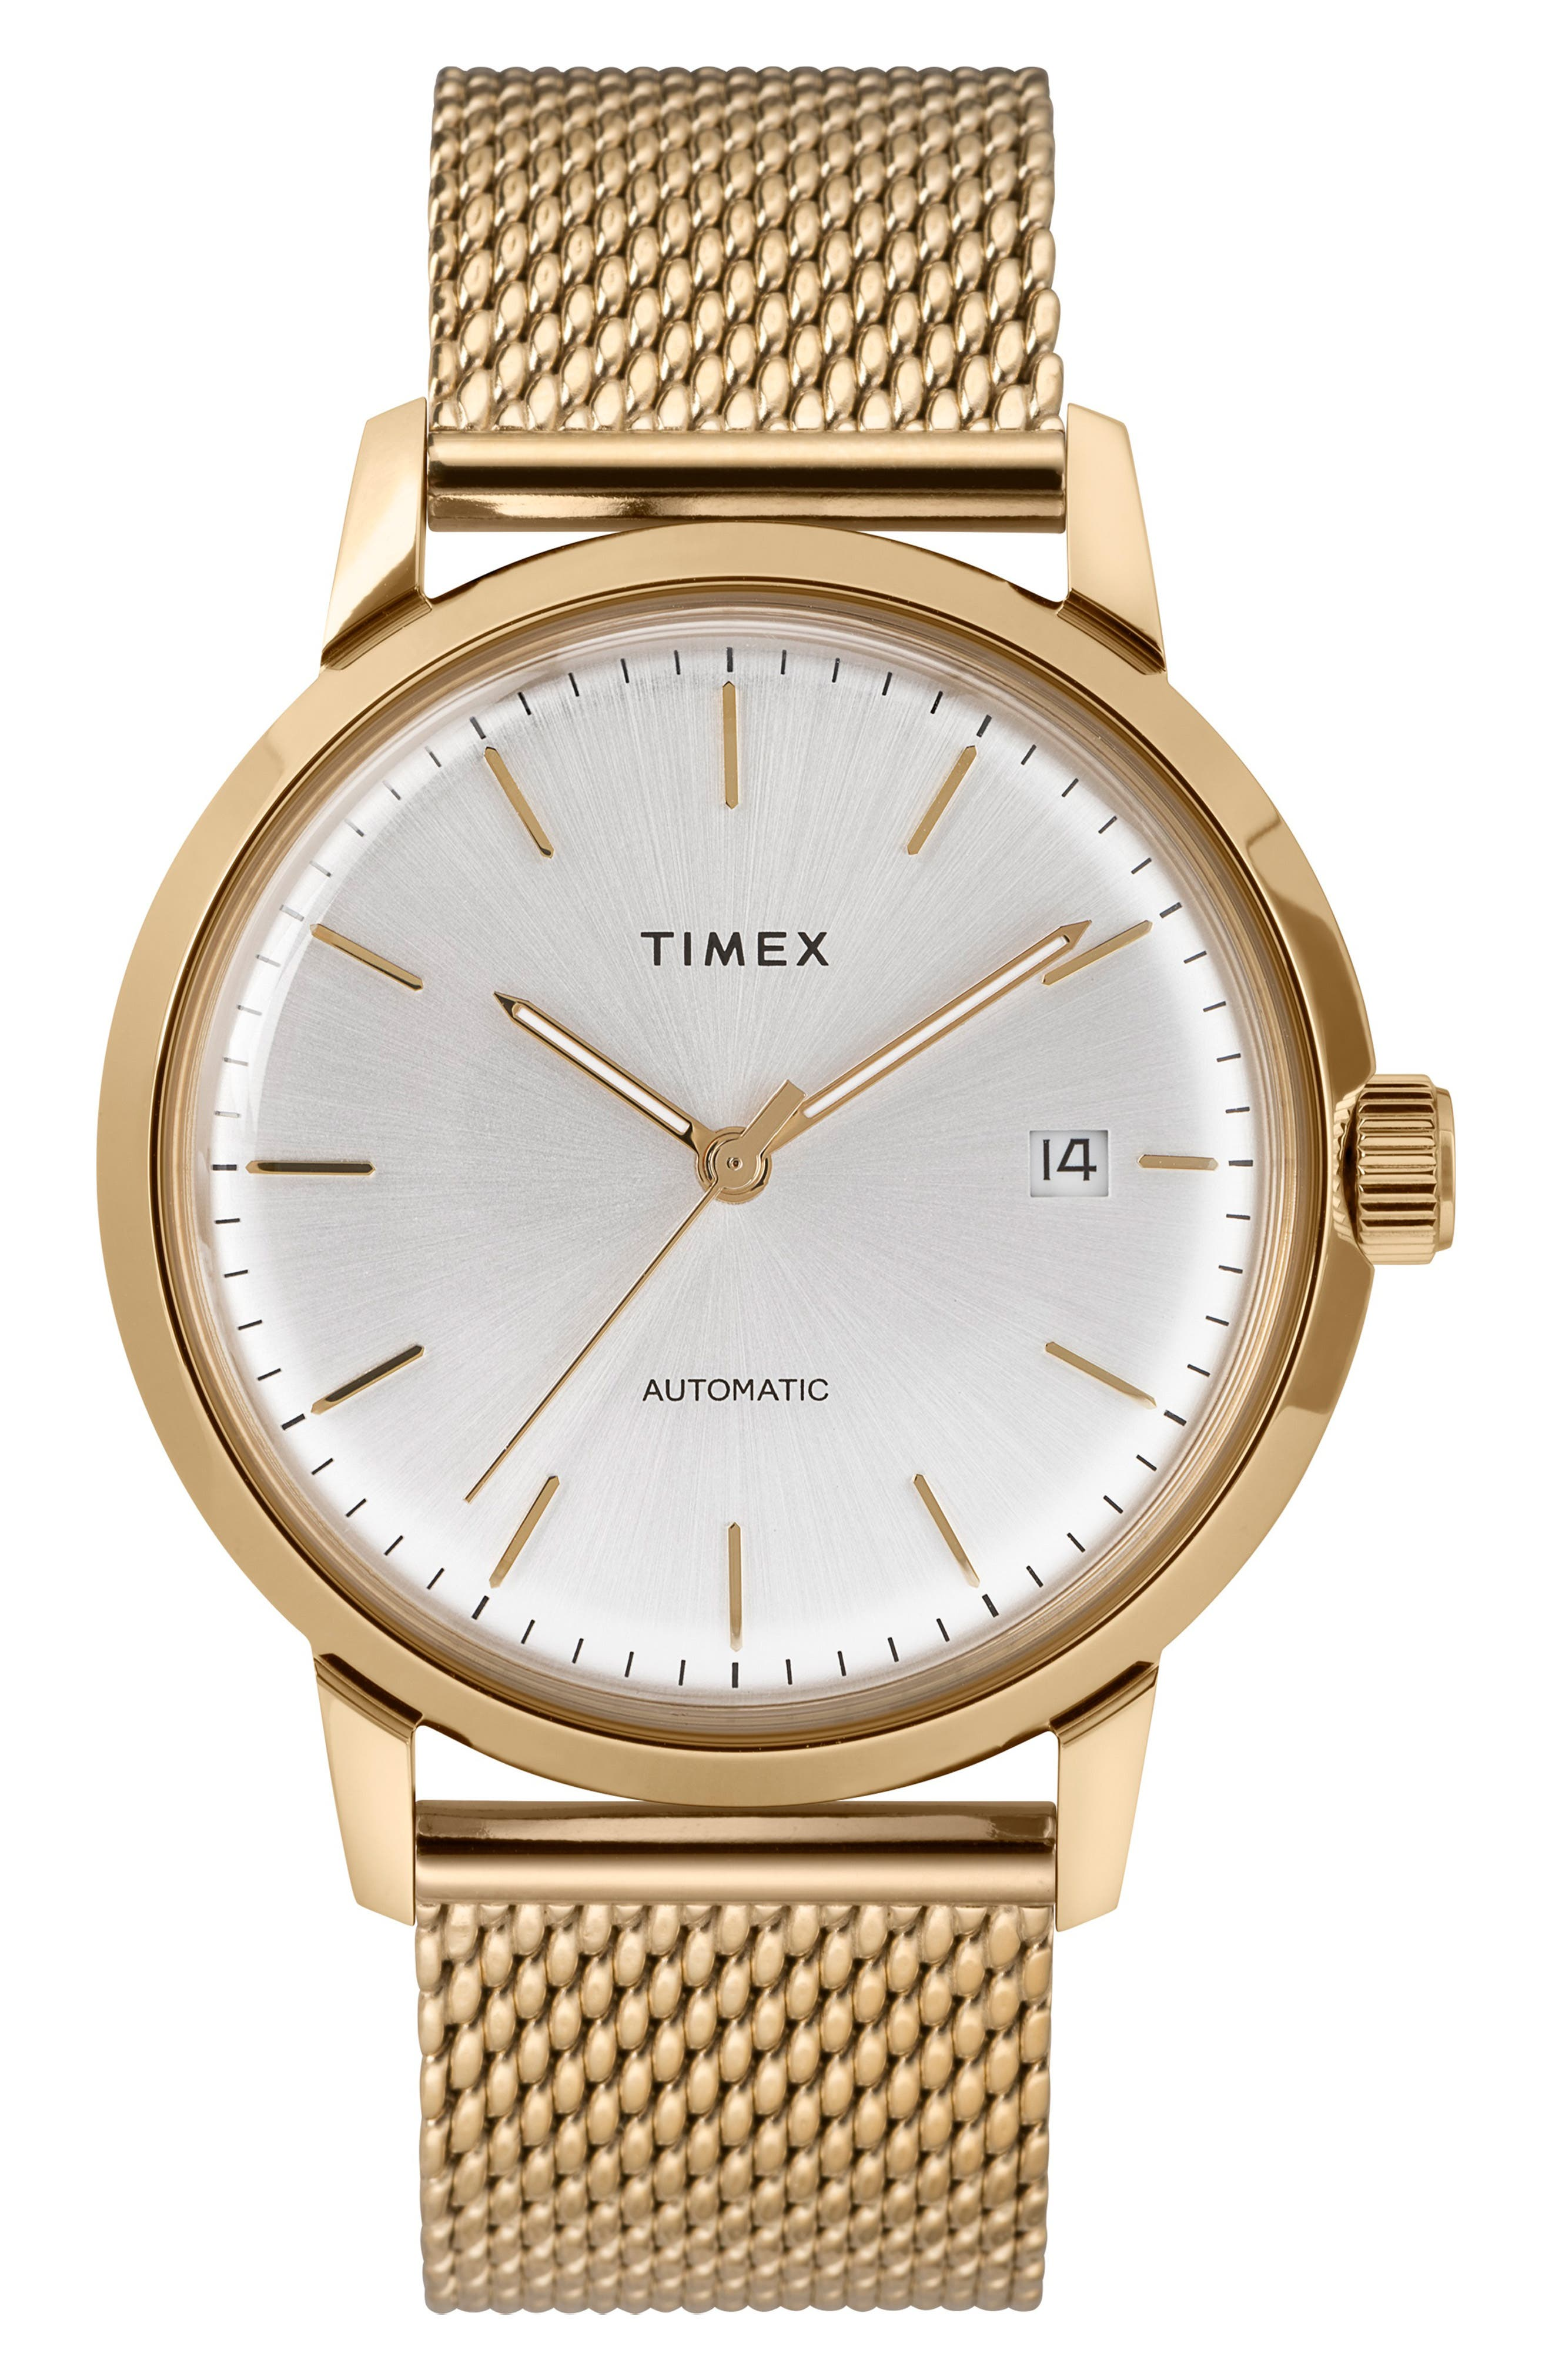 Marlin Mesh Strap Automatic Watch, 40mm, Main, color, GOLD/ SILVER/ GOLD